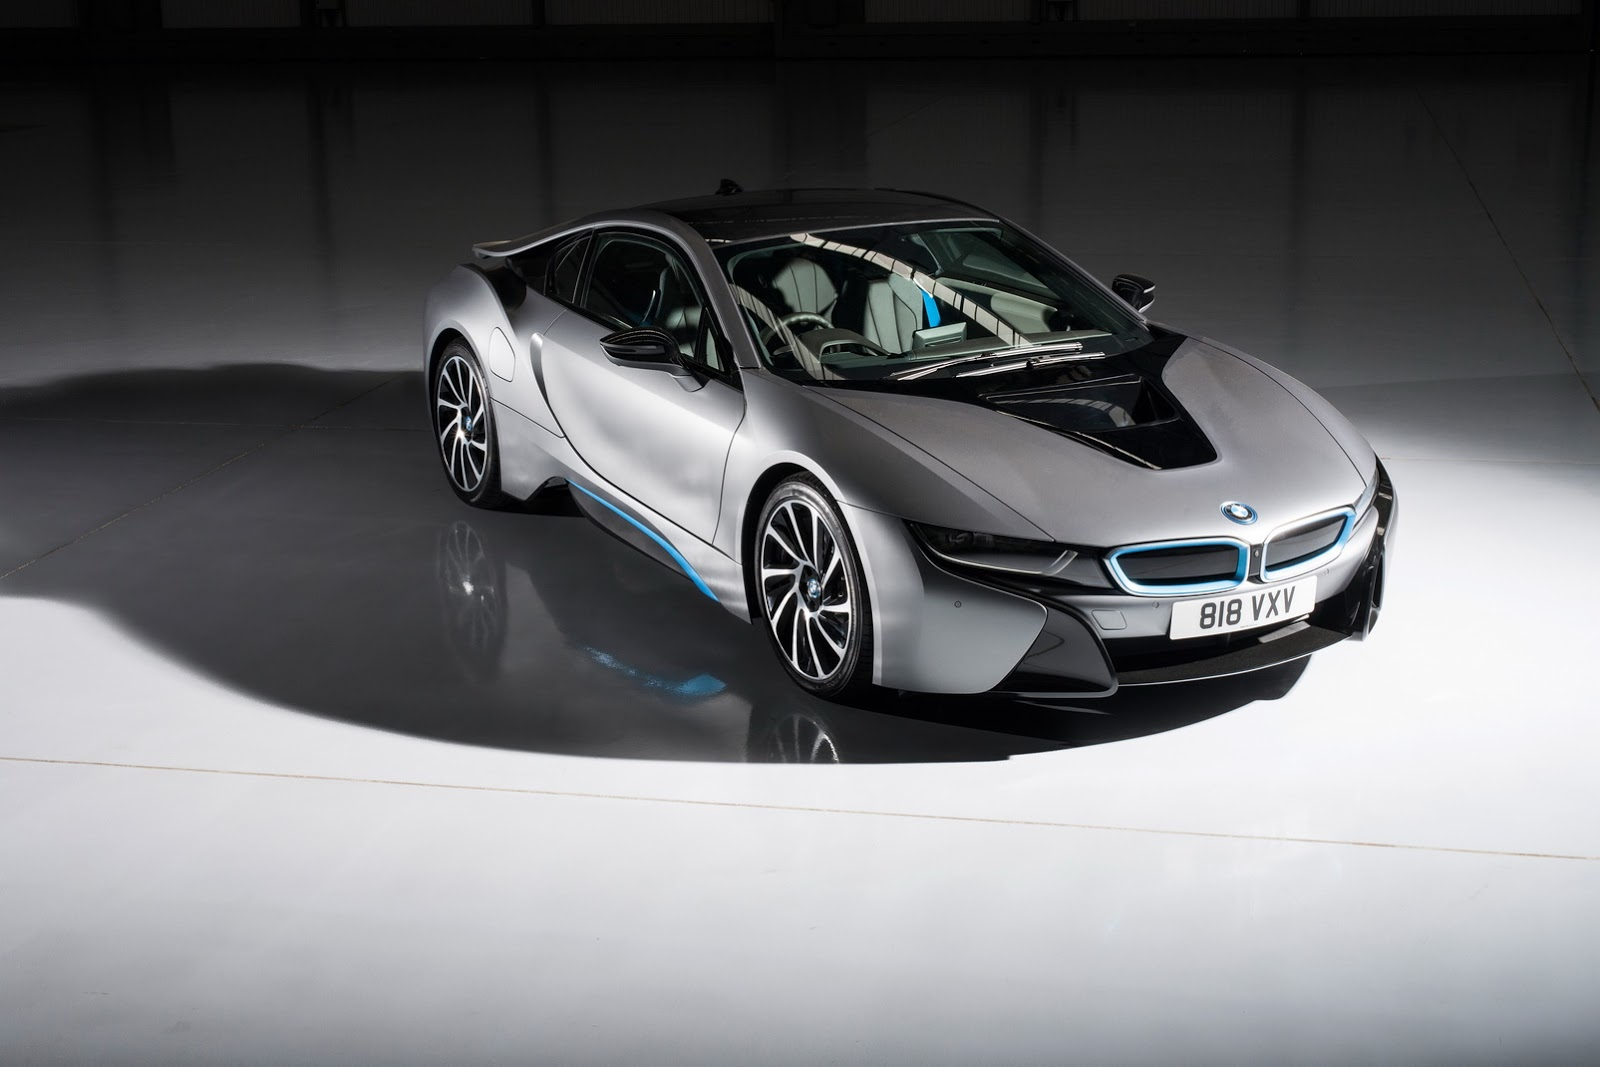 Video Bmw I8 Drag Races Edna The Electric Van From Hell